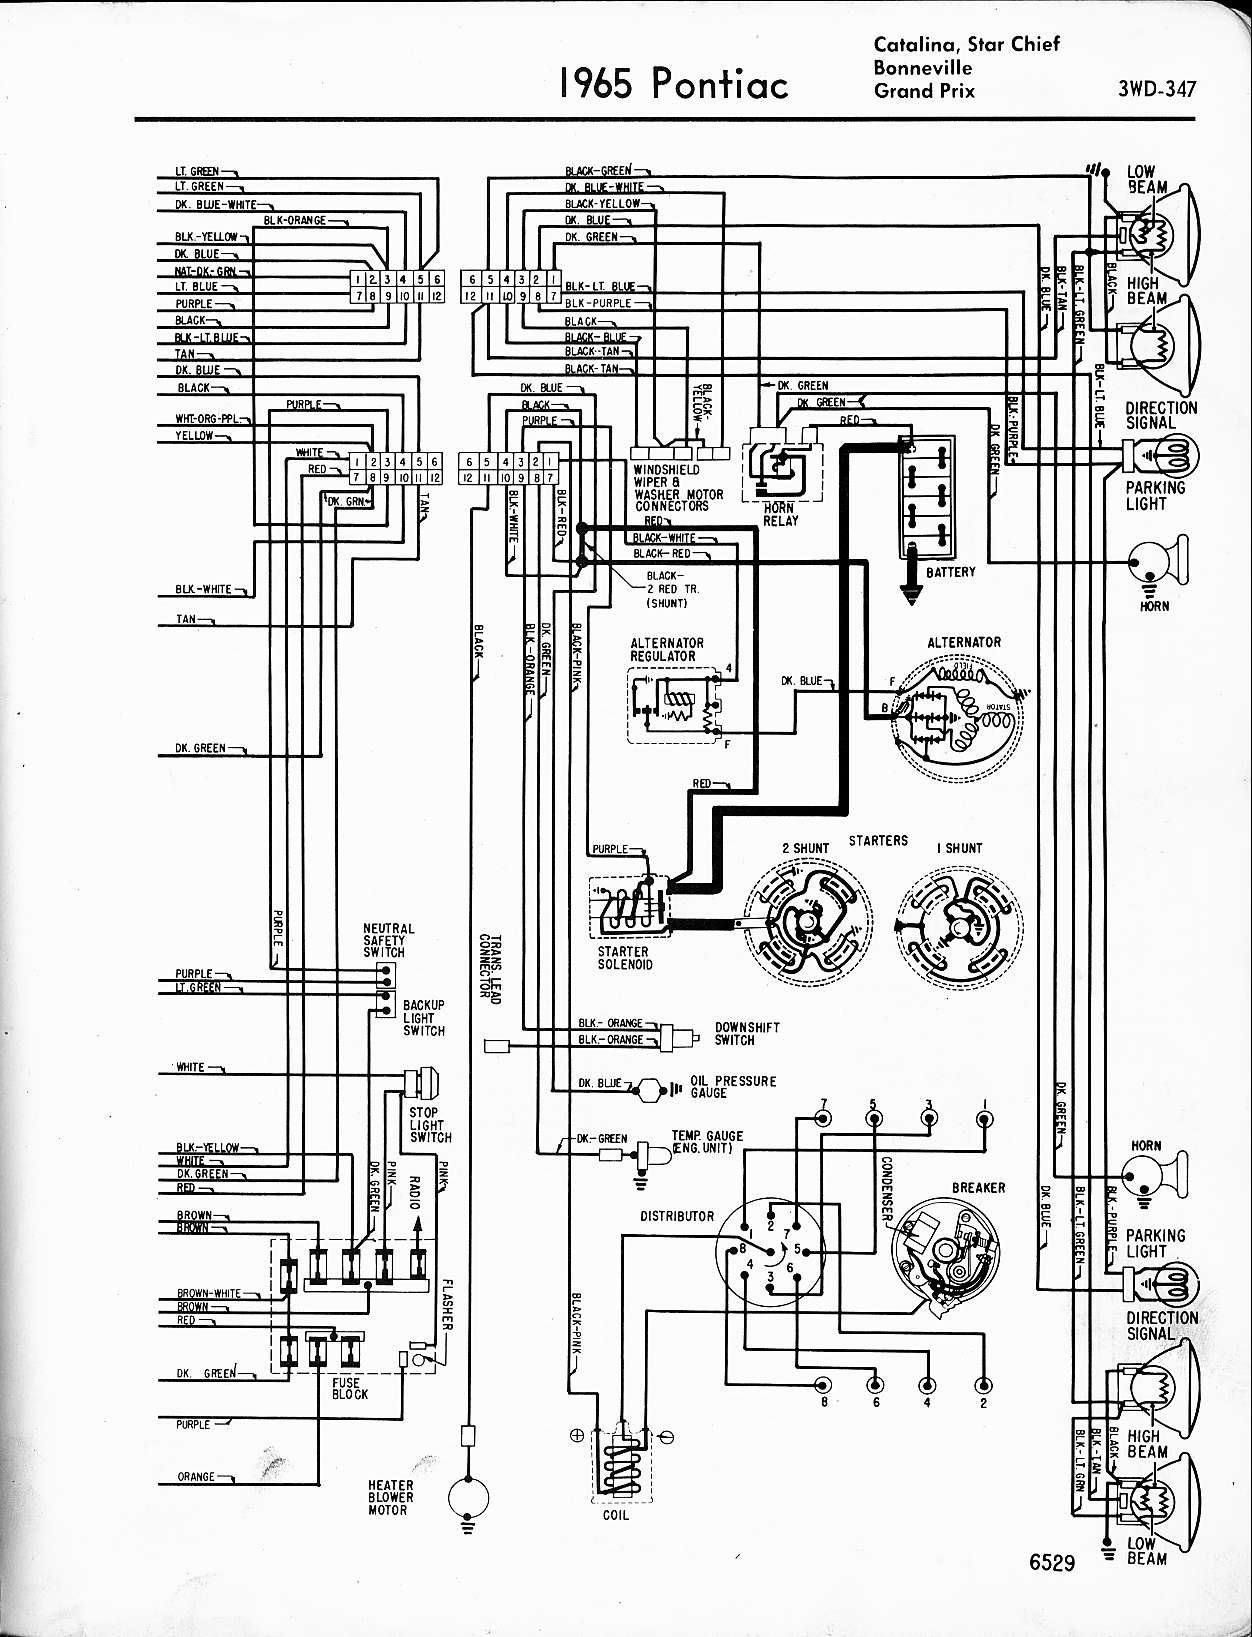 Gm Distributor Wiring Diagram 1970 Pont Wiring Diagram Inspection Inspection Consorziofiuggiturismo It